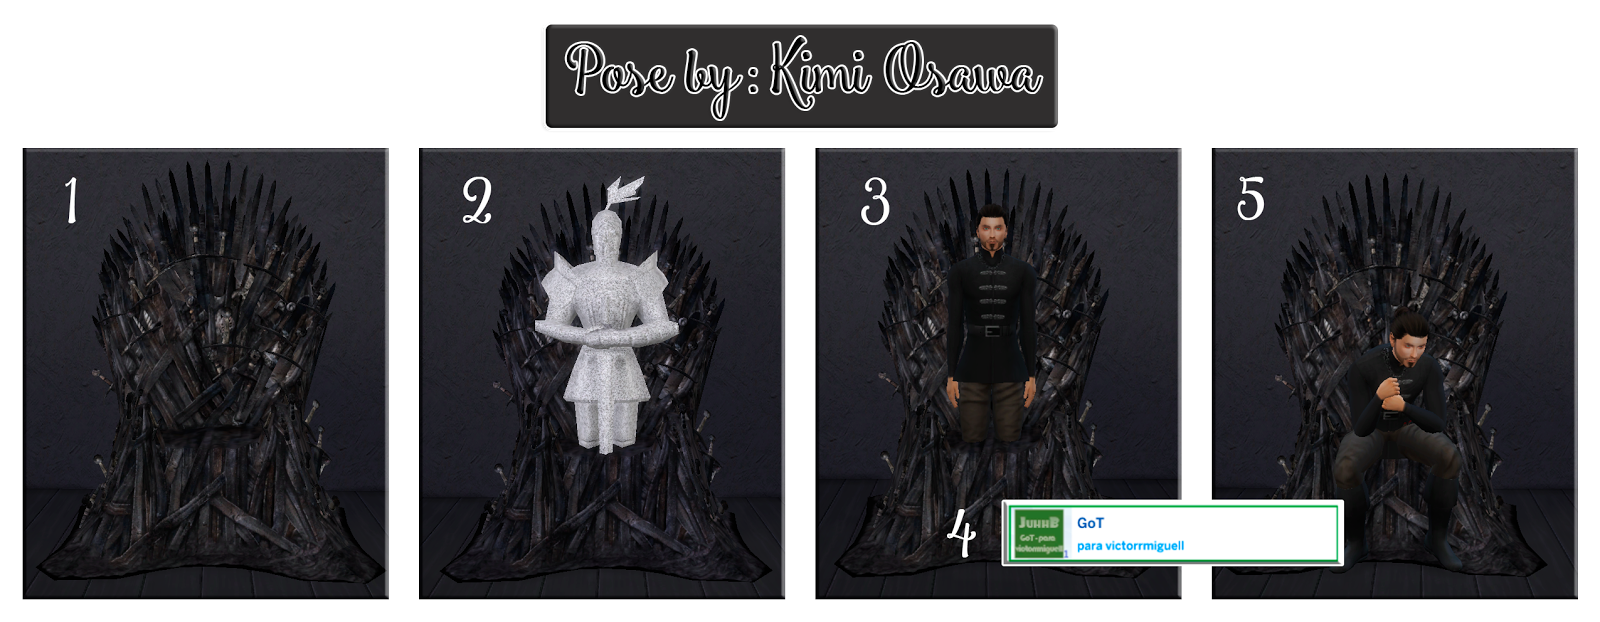 Pose Iron Throne by Kimi Osawa